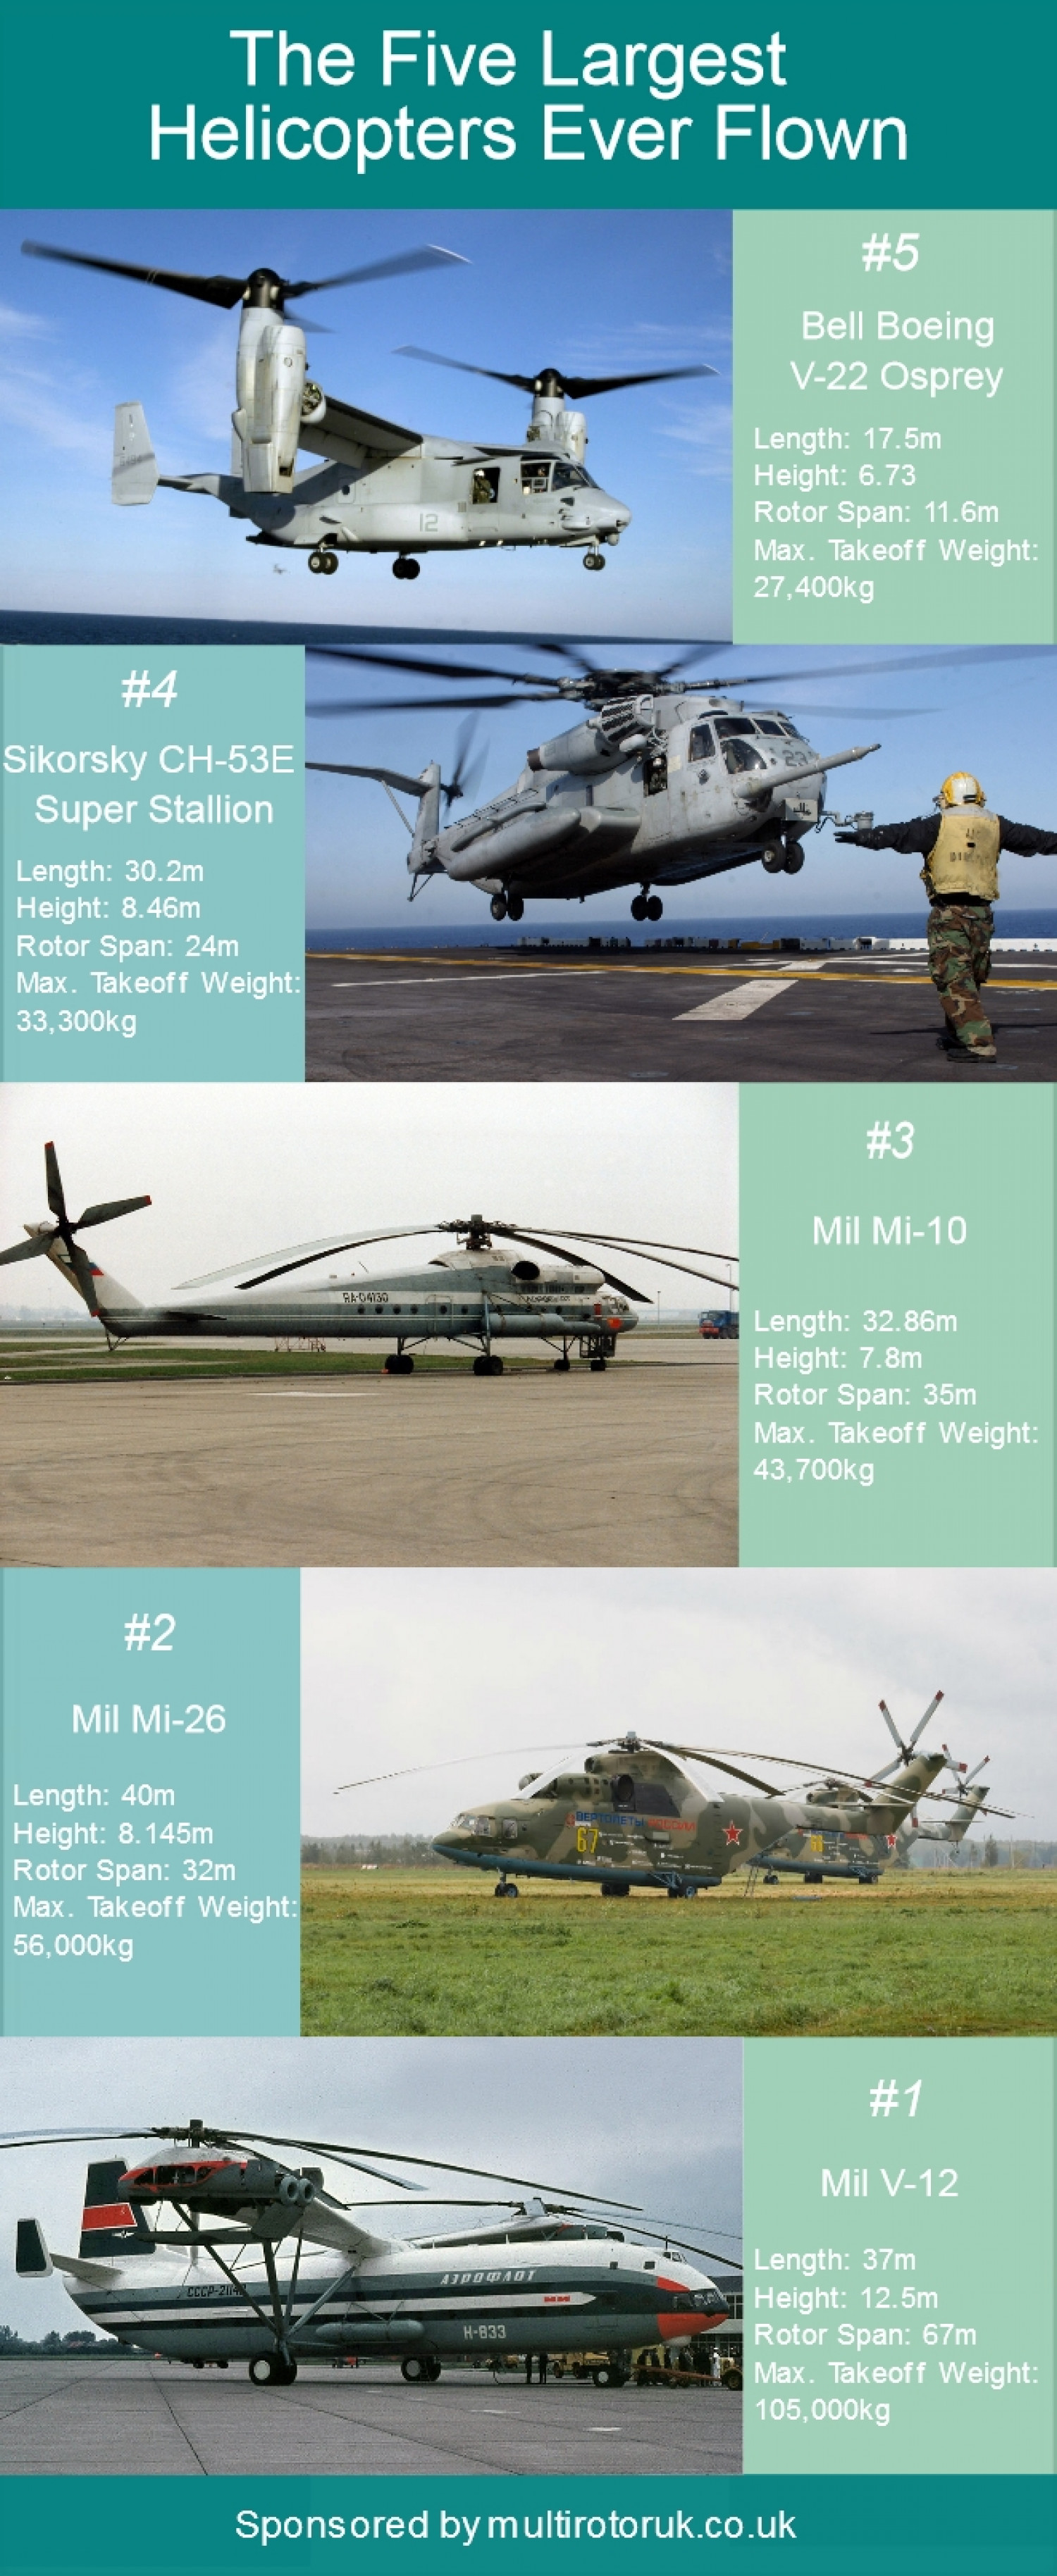 The Five Largest Helicopters Ever Flown Infographic